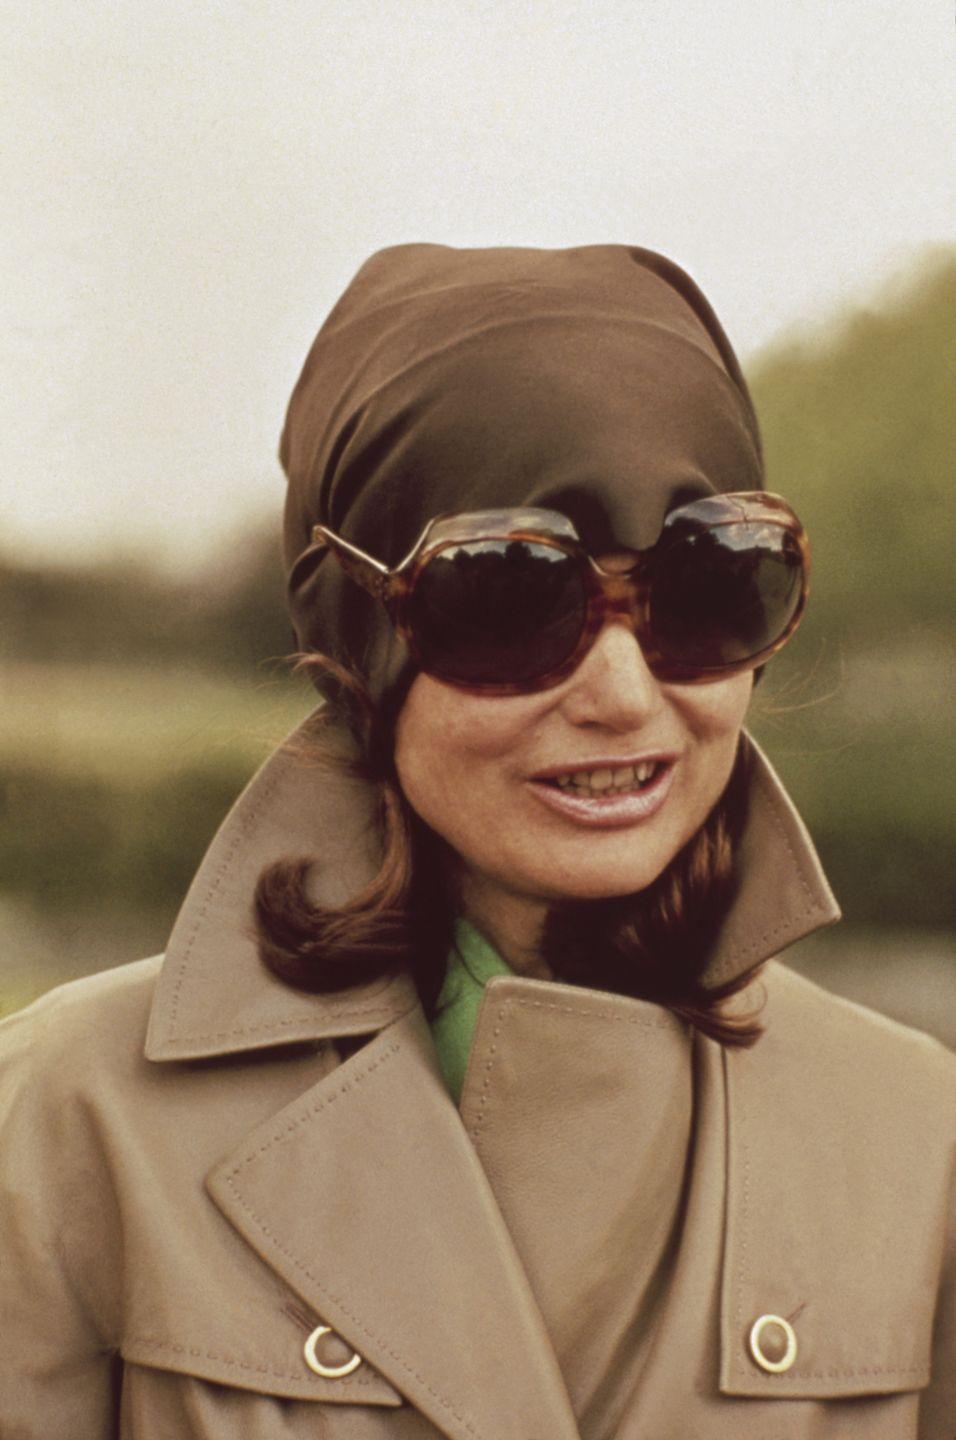 <p>As one of the most recognizable figures in the world, Jackie O attempts to go incognito in large sunglasses and a headscarf. </p>